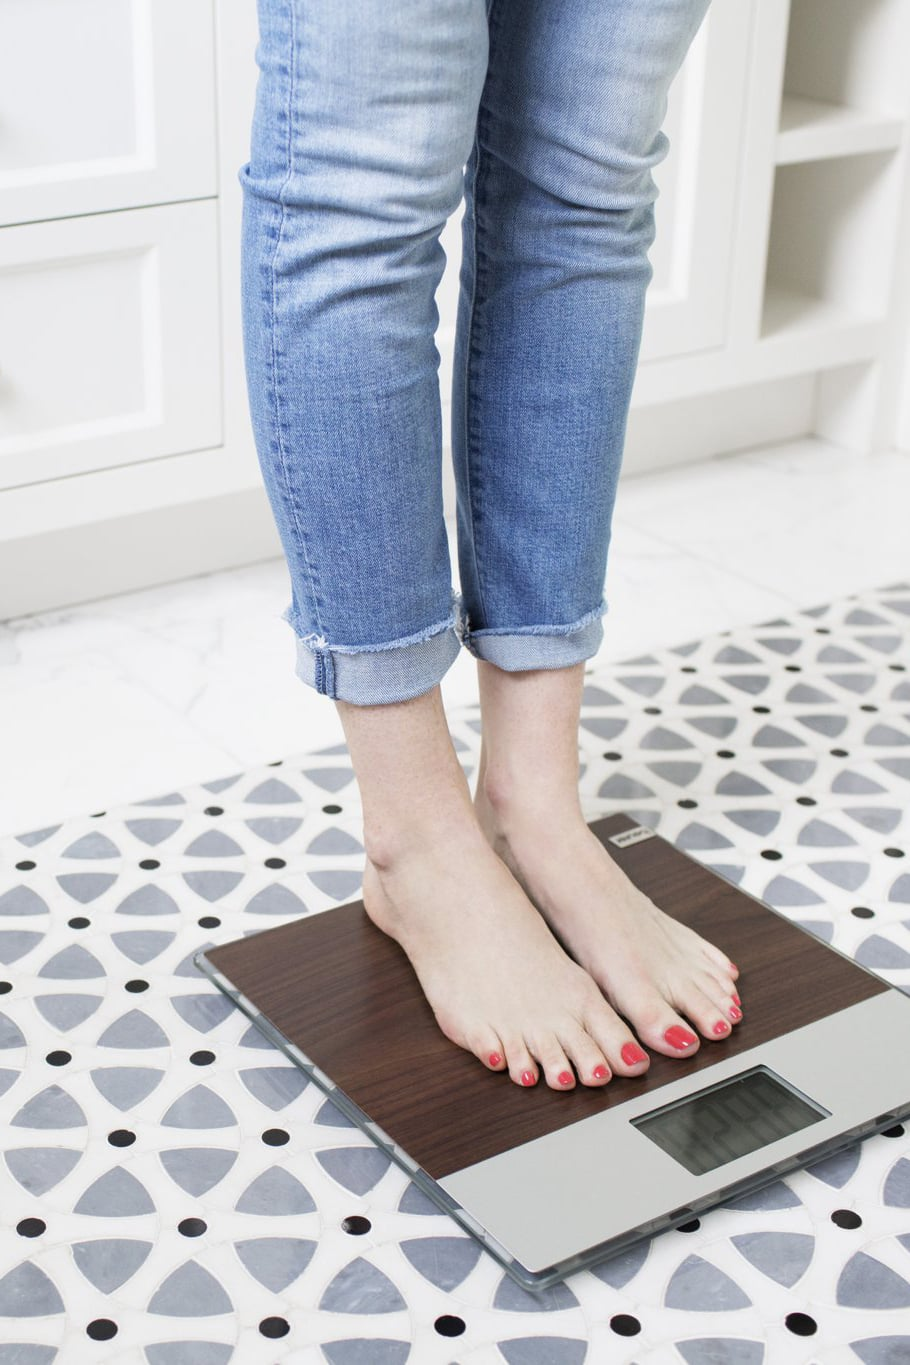 Try This All-Natural, Painless Treatment to Lose Weight, Boost Metabolism, and Stop Binge Eating